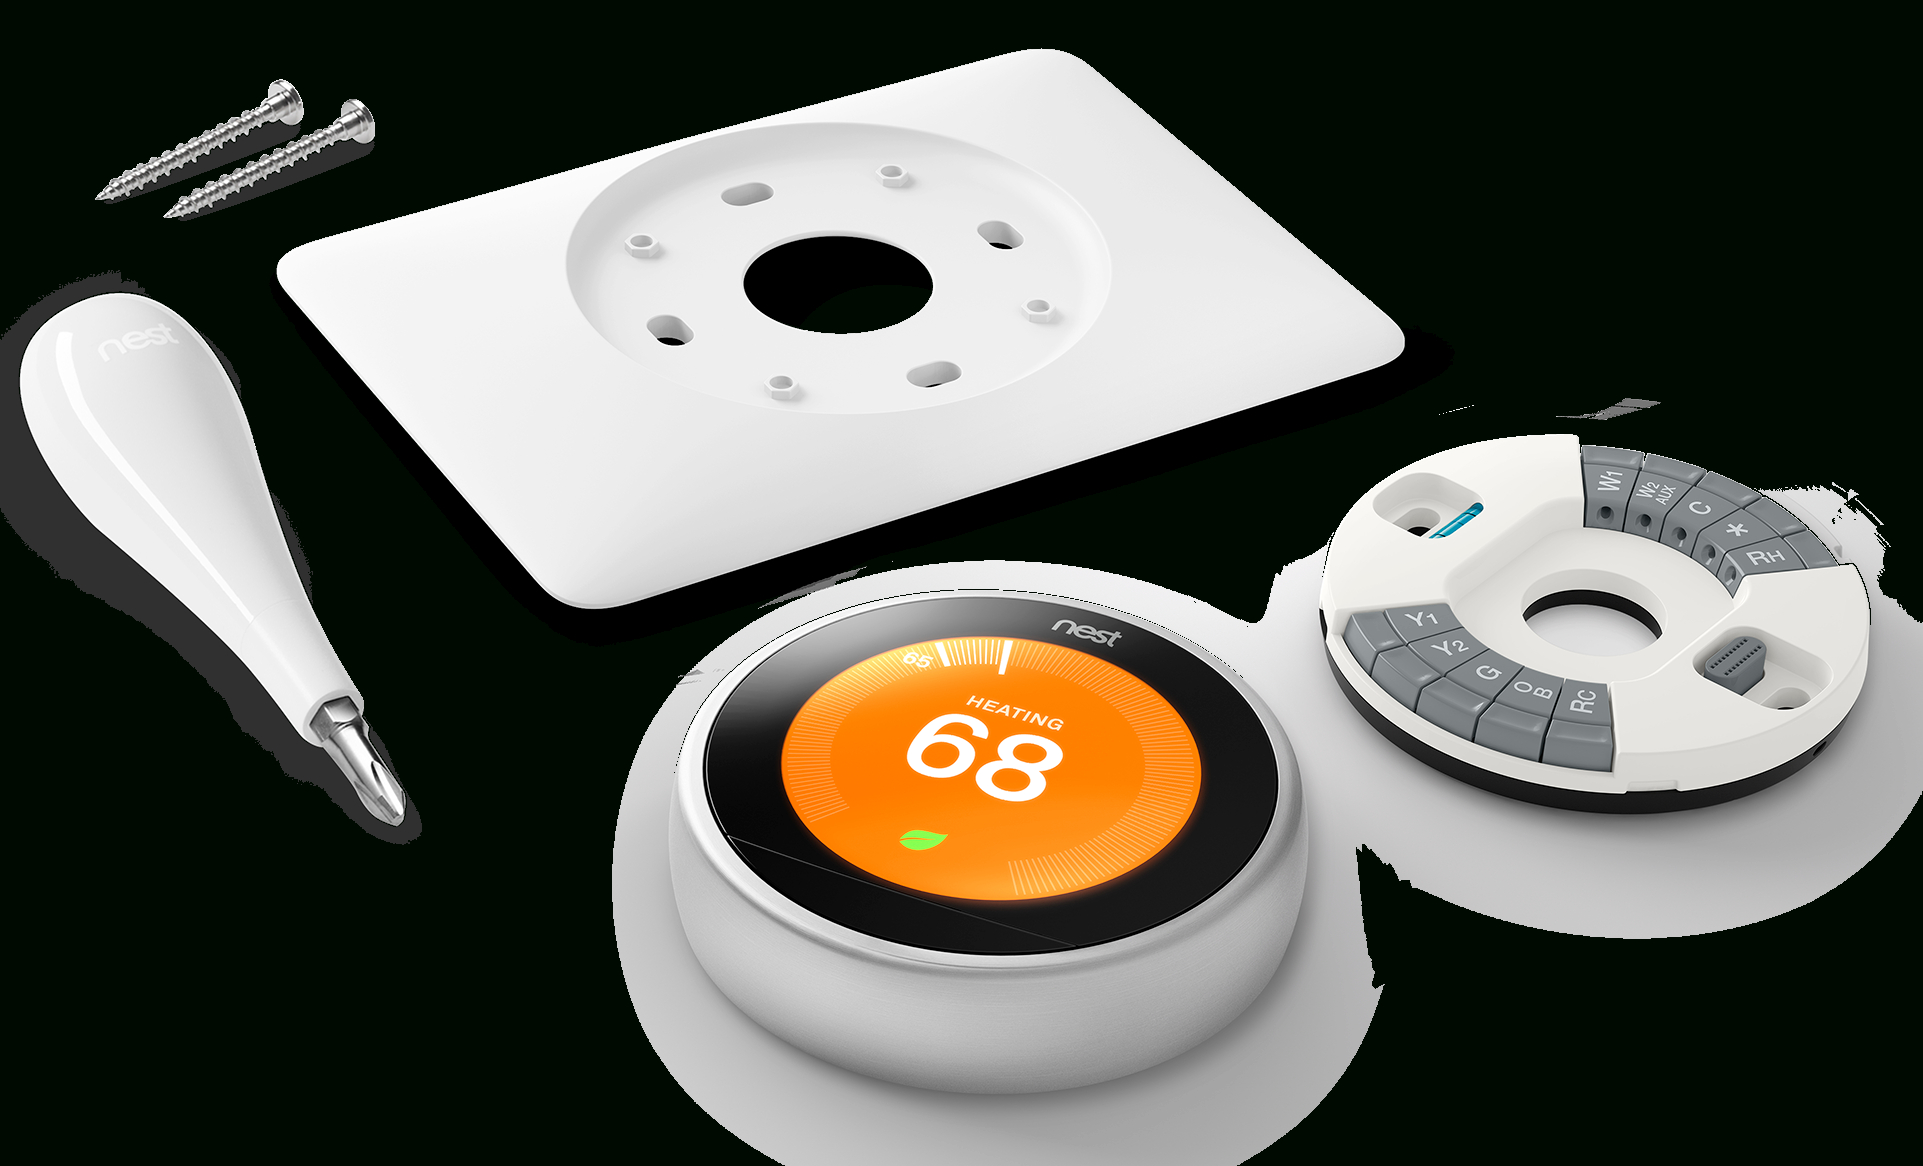 How To Install Your Nest Thermostat - Nest T3007Es Wiring Diagram With Heat Pump